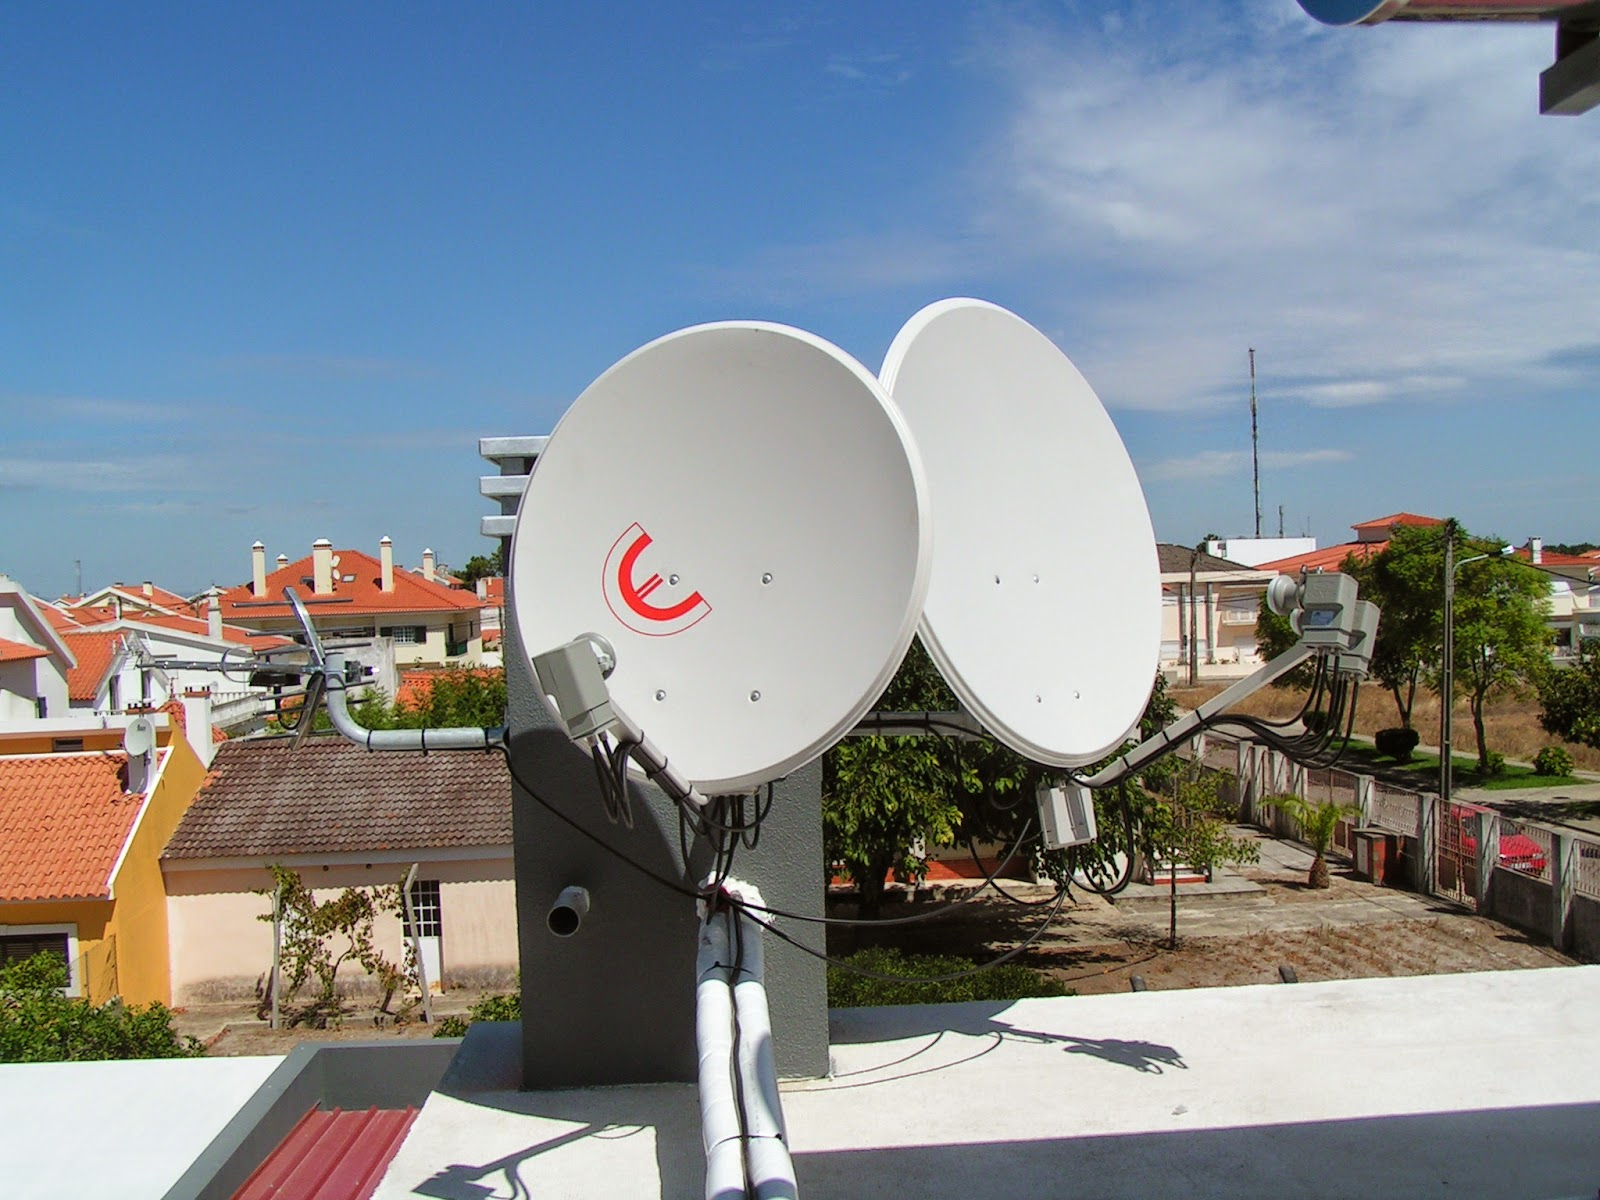 hotbird hispasat: